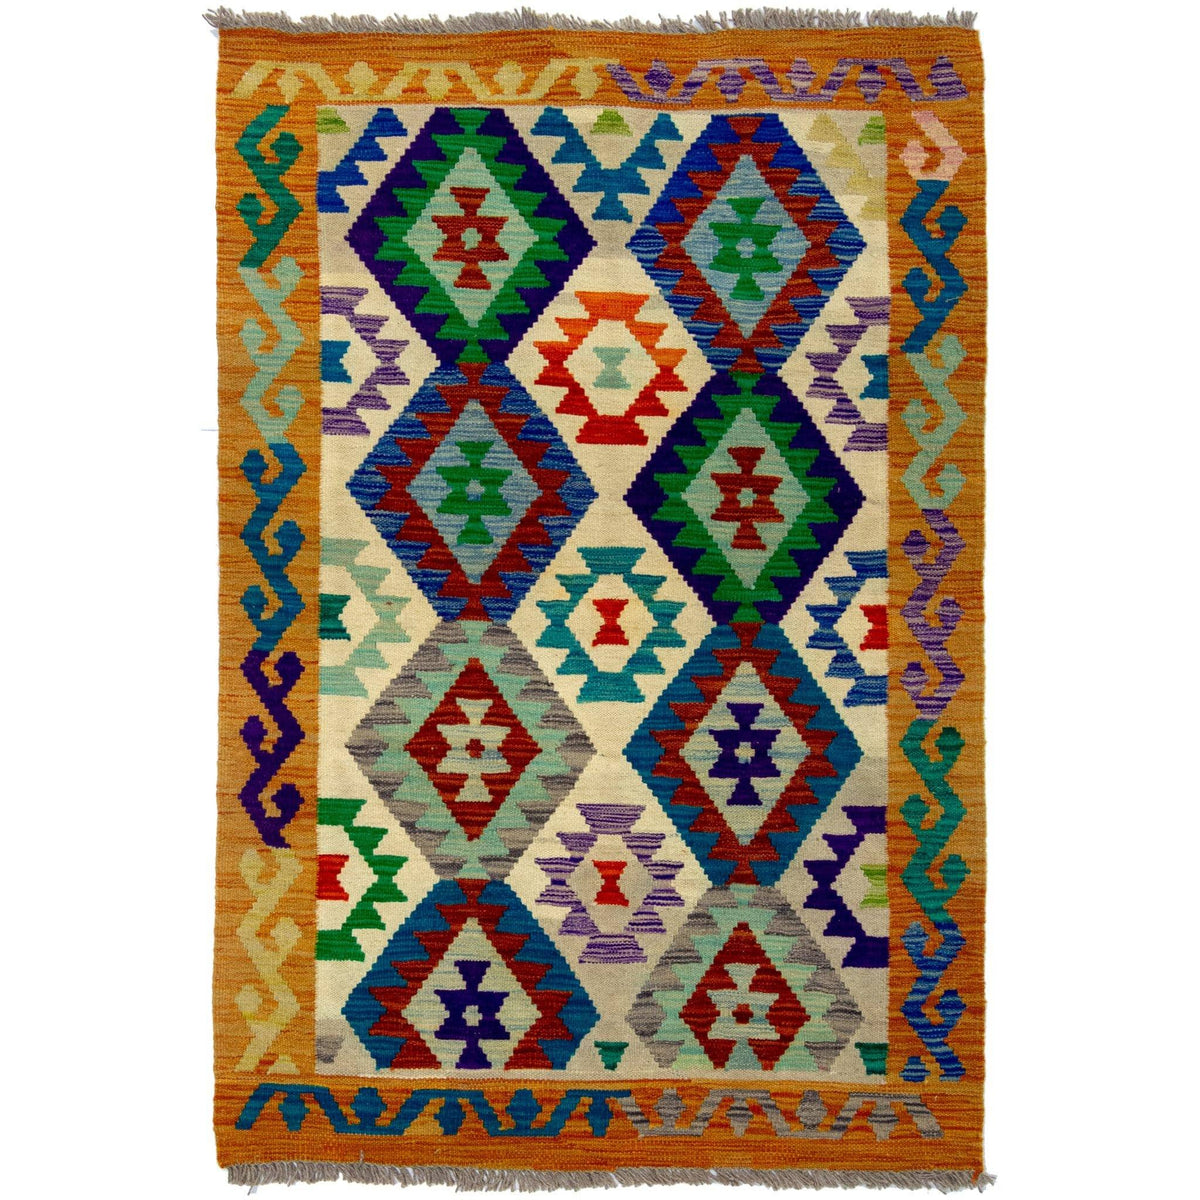 Hand-woven Afghan Chobi Kilim Rug 103cm x 151cm Persian-Rug | House-of-Haghi | NewMarket | Auckland | NZ | Handmade Persian Rugs | Hand Knotted Persian Rugs